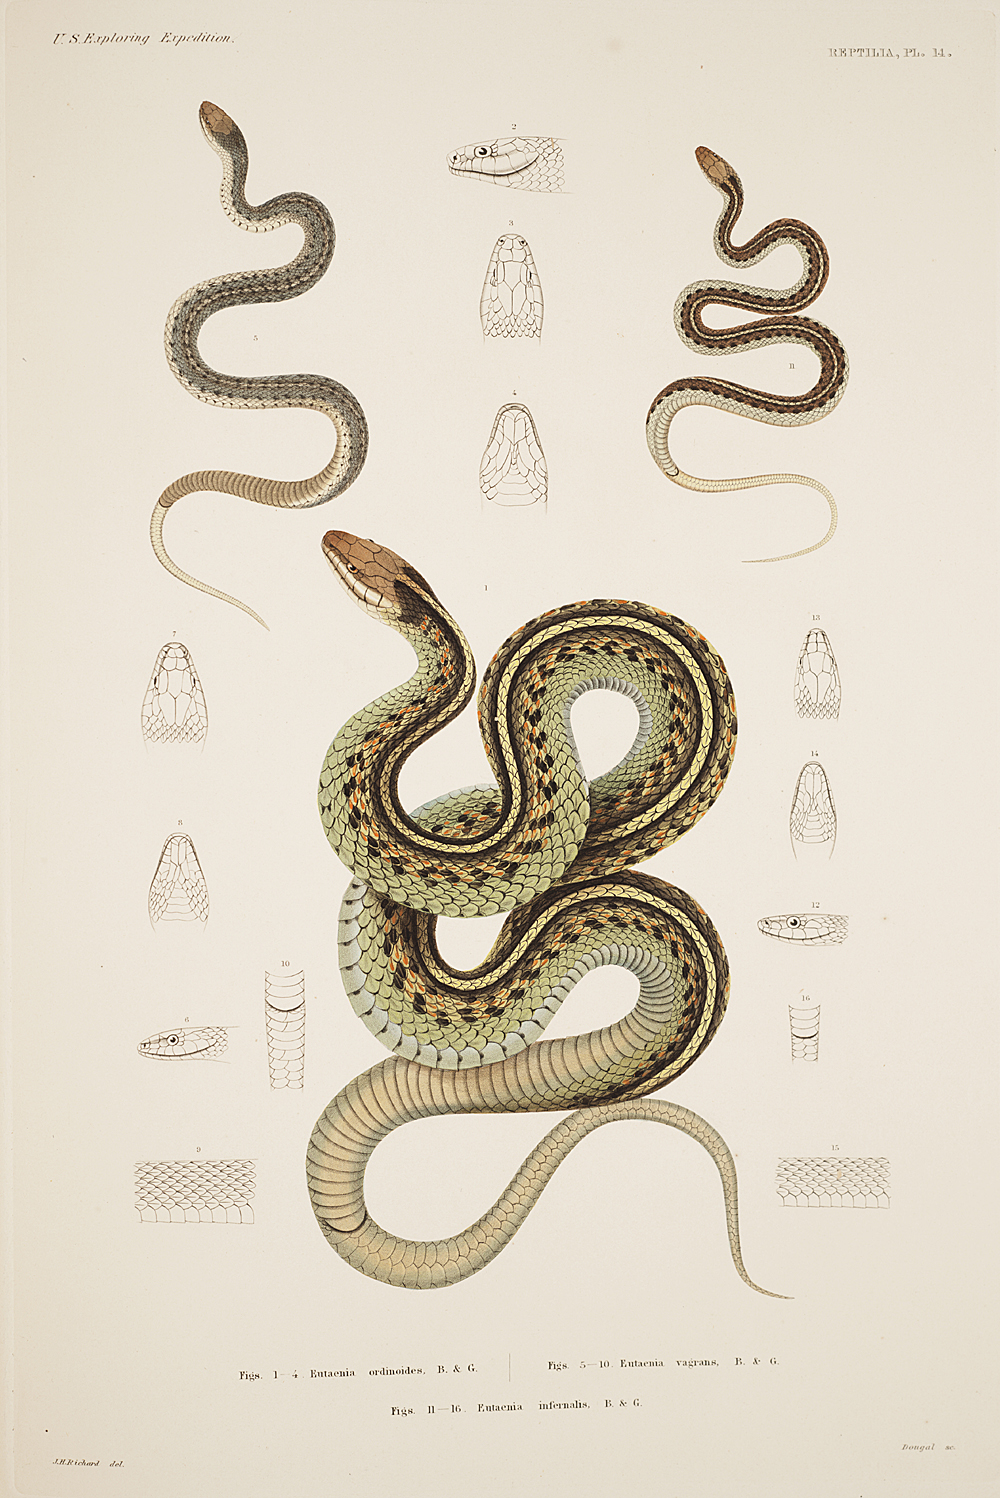 Reptilia, Plate 14,  Image number:sil19-31-047b